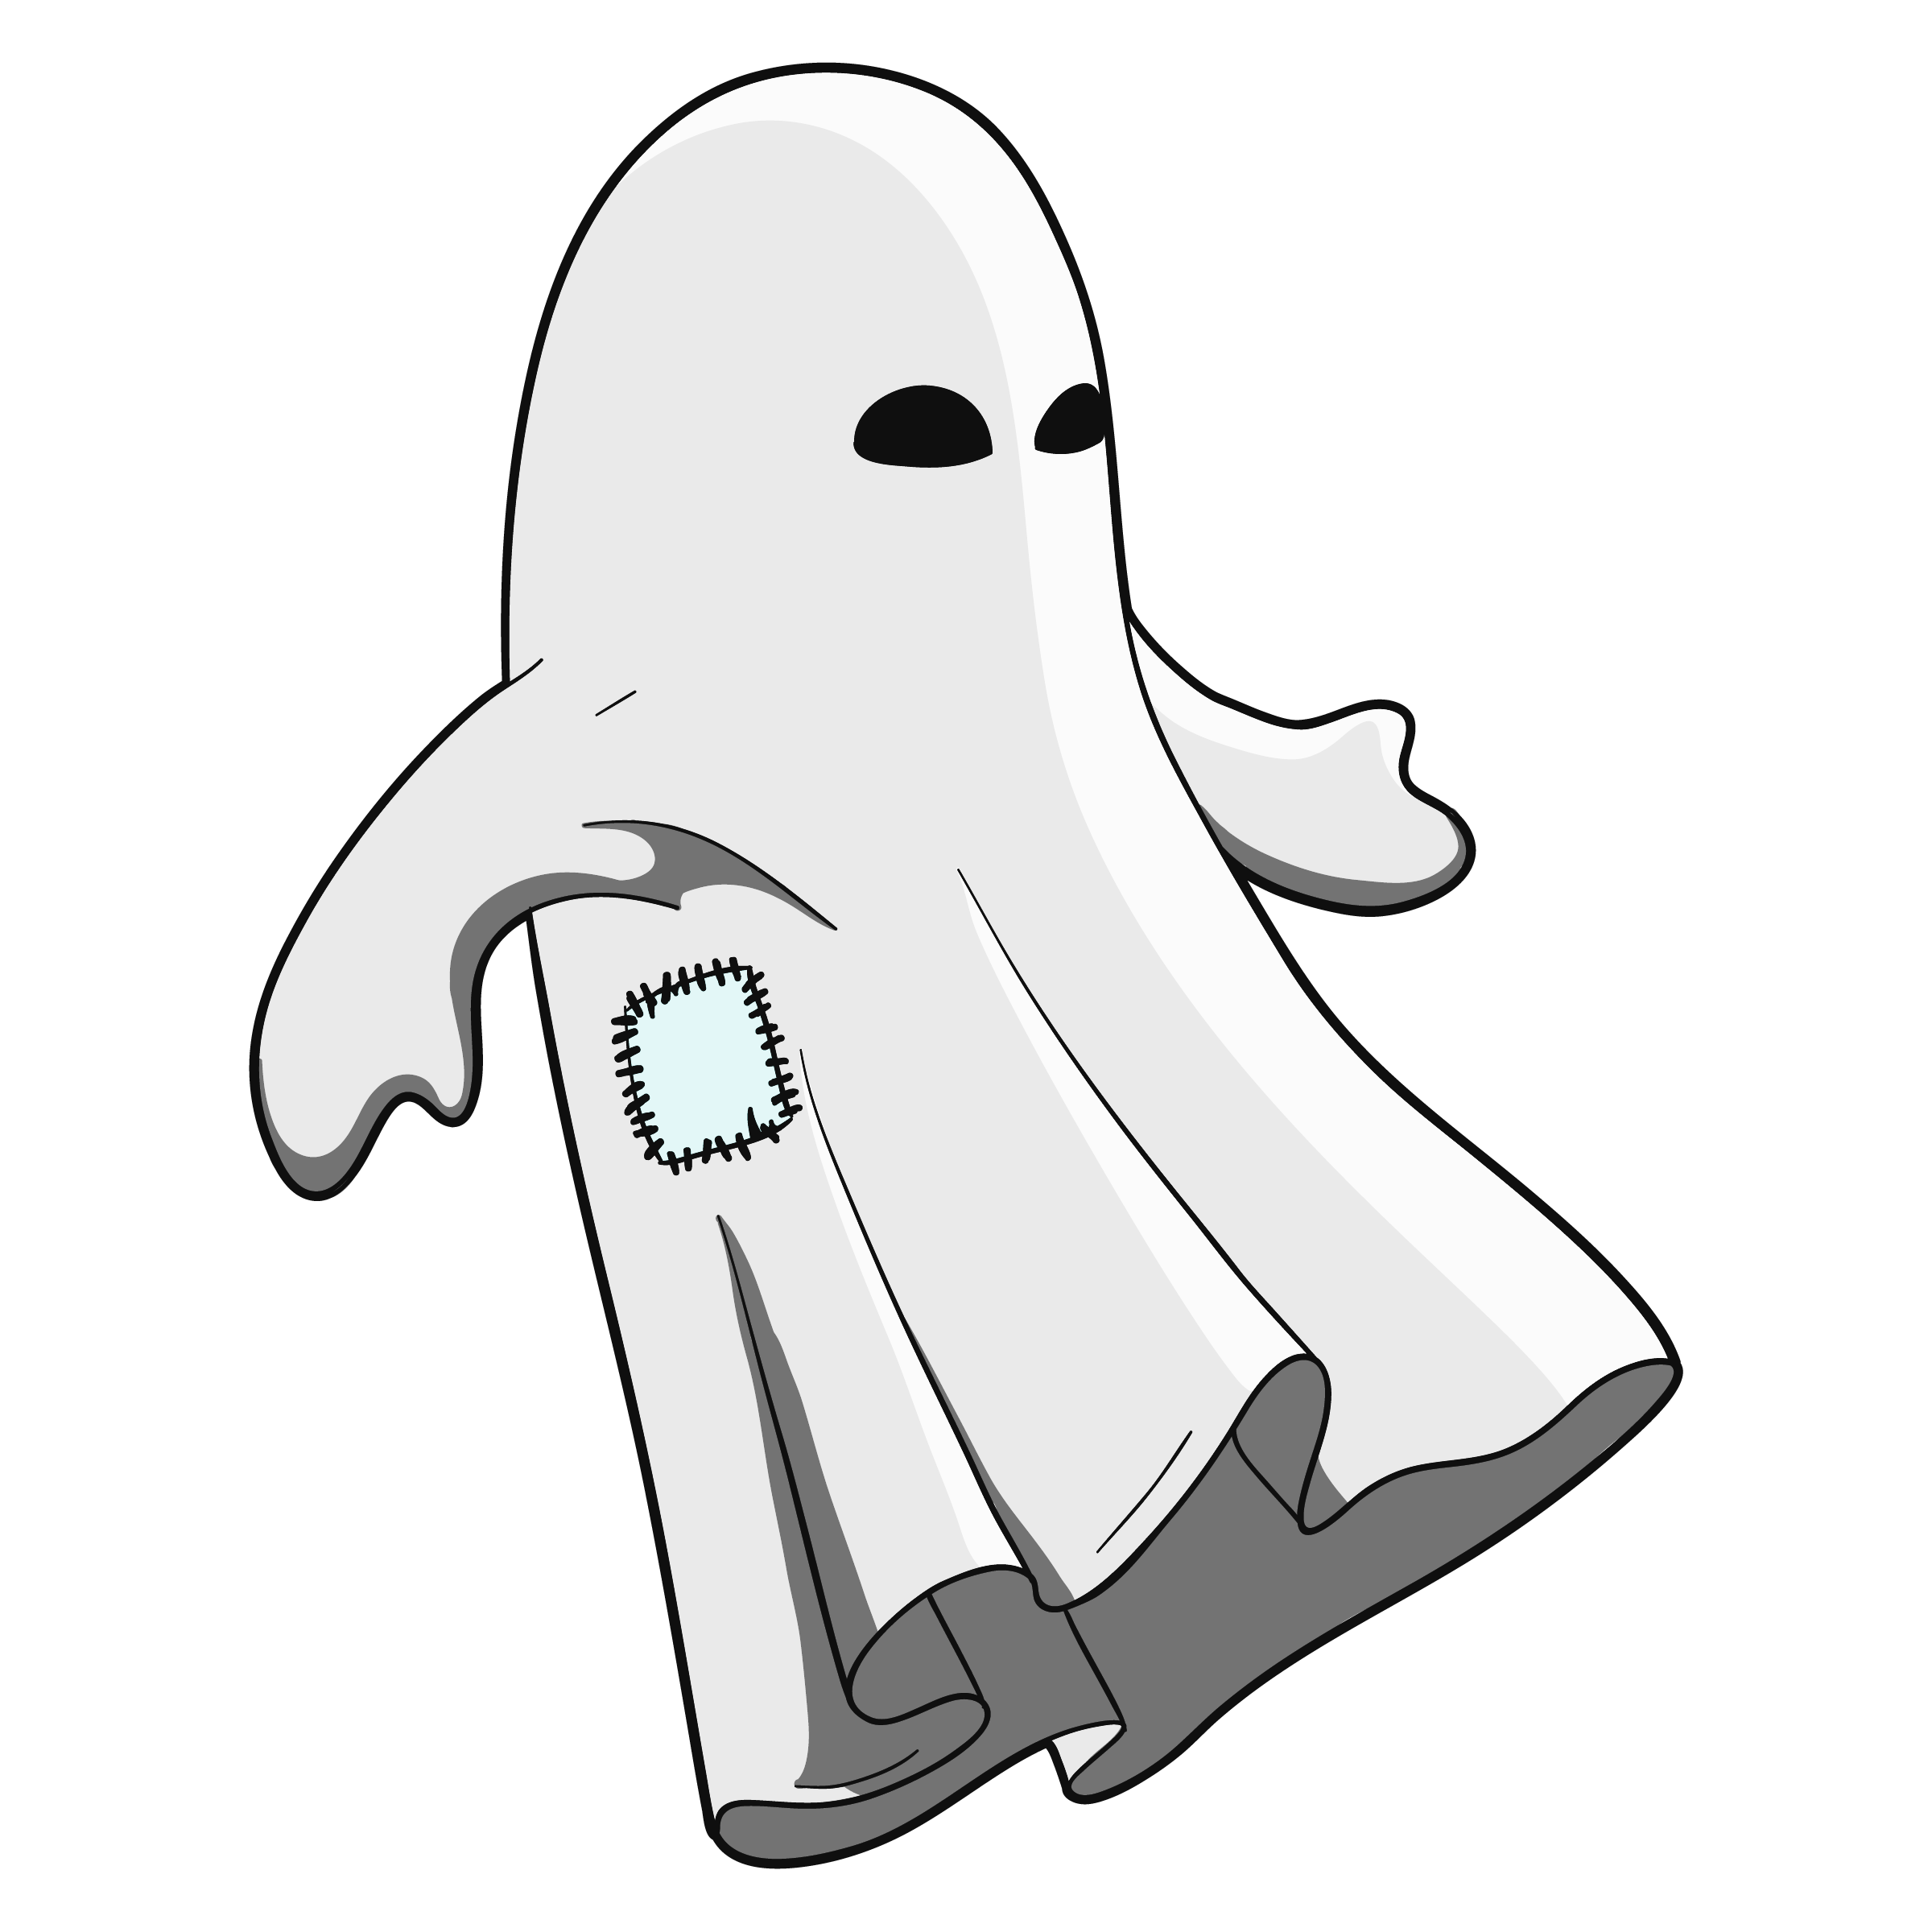 Halloween Scary Ghost Transparent Gallery